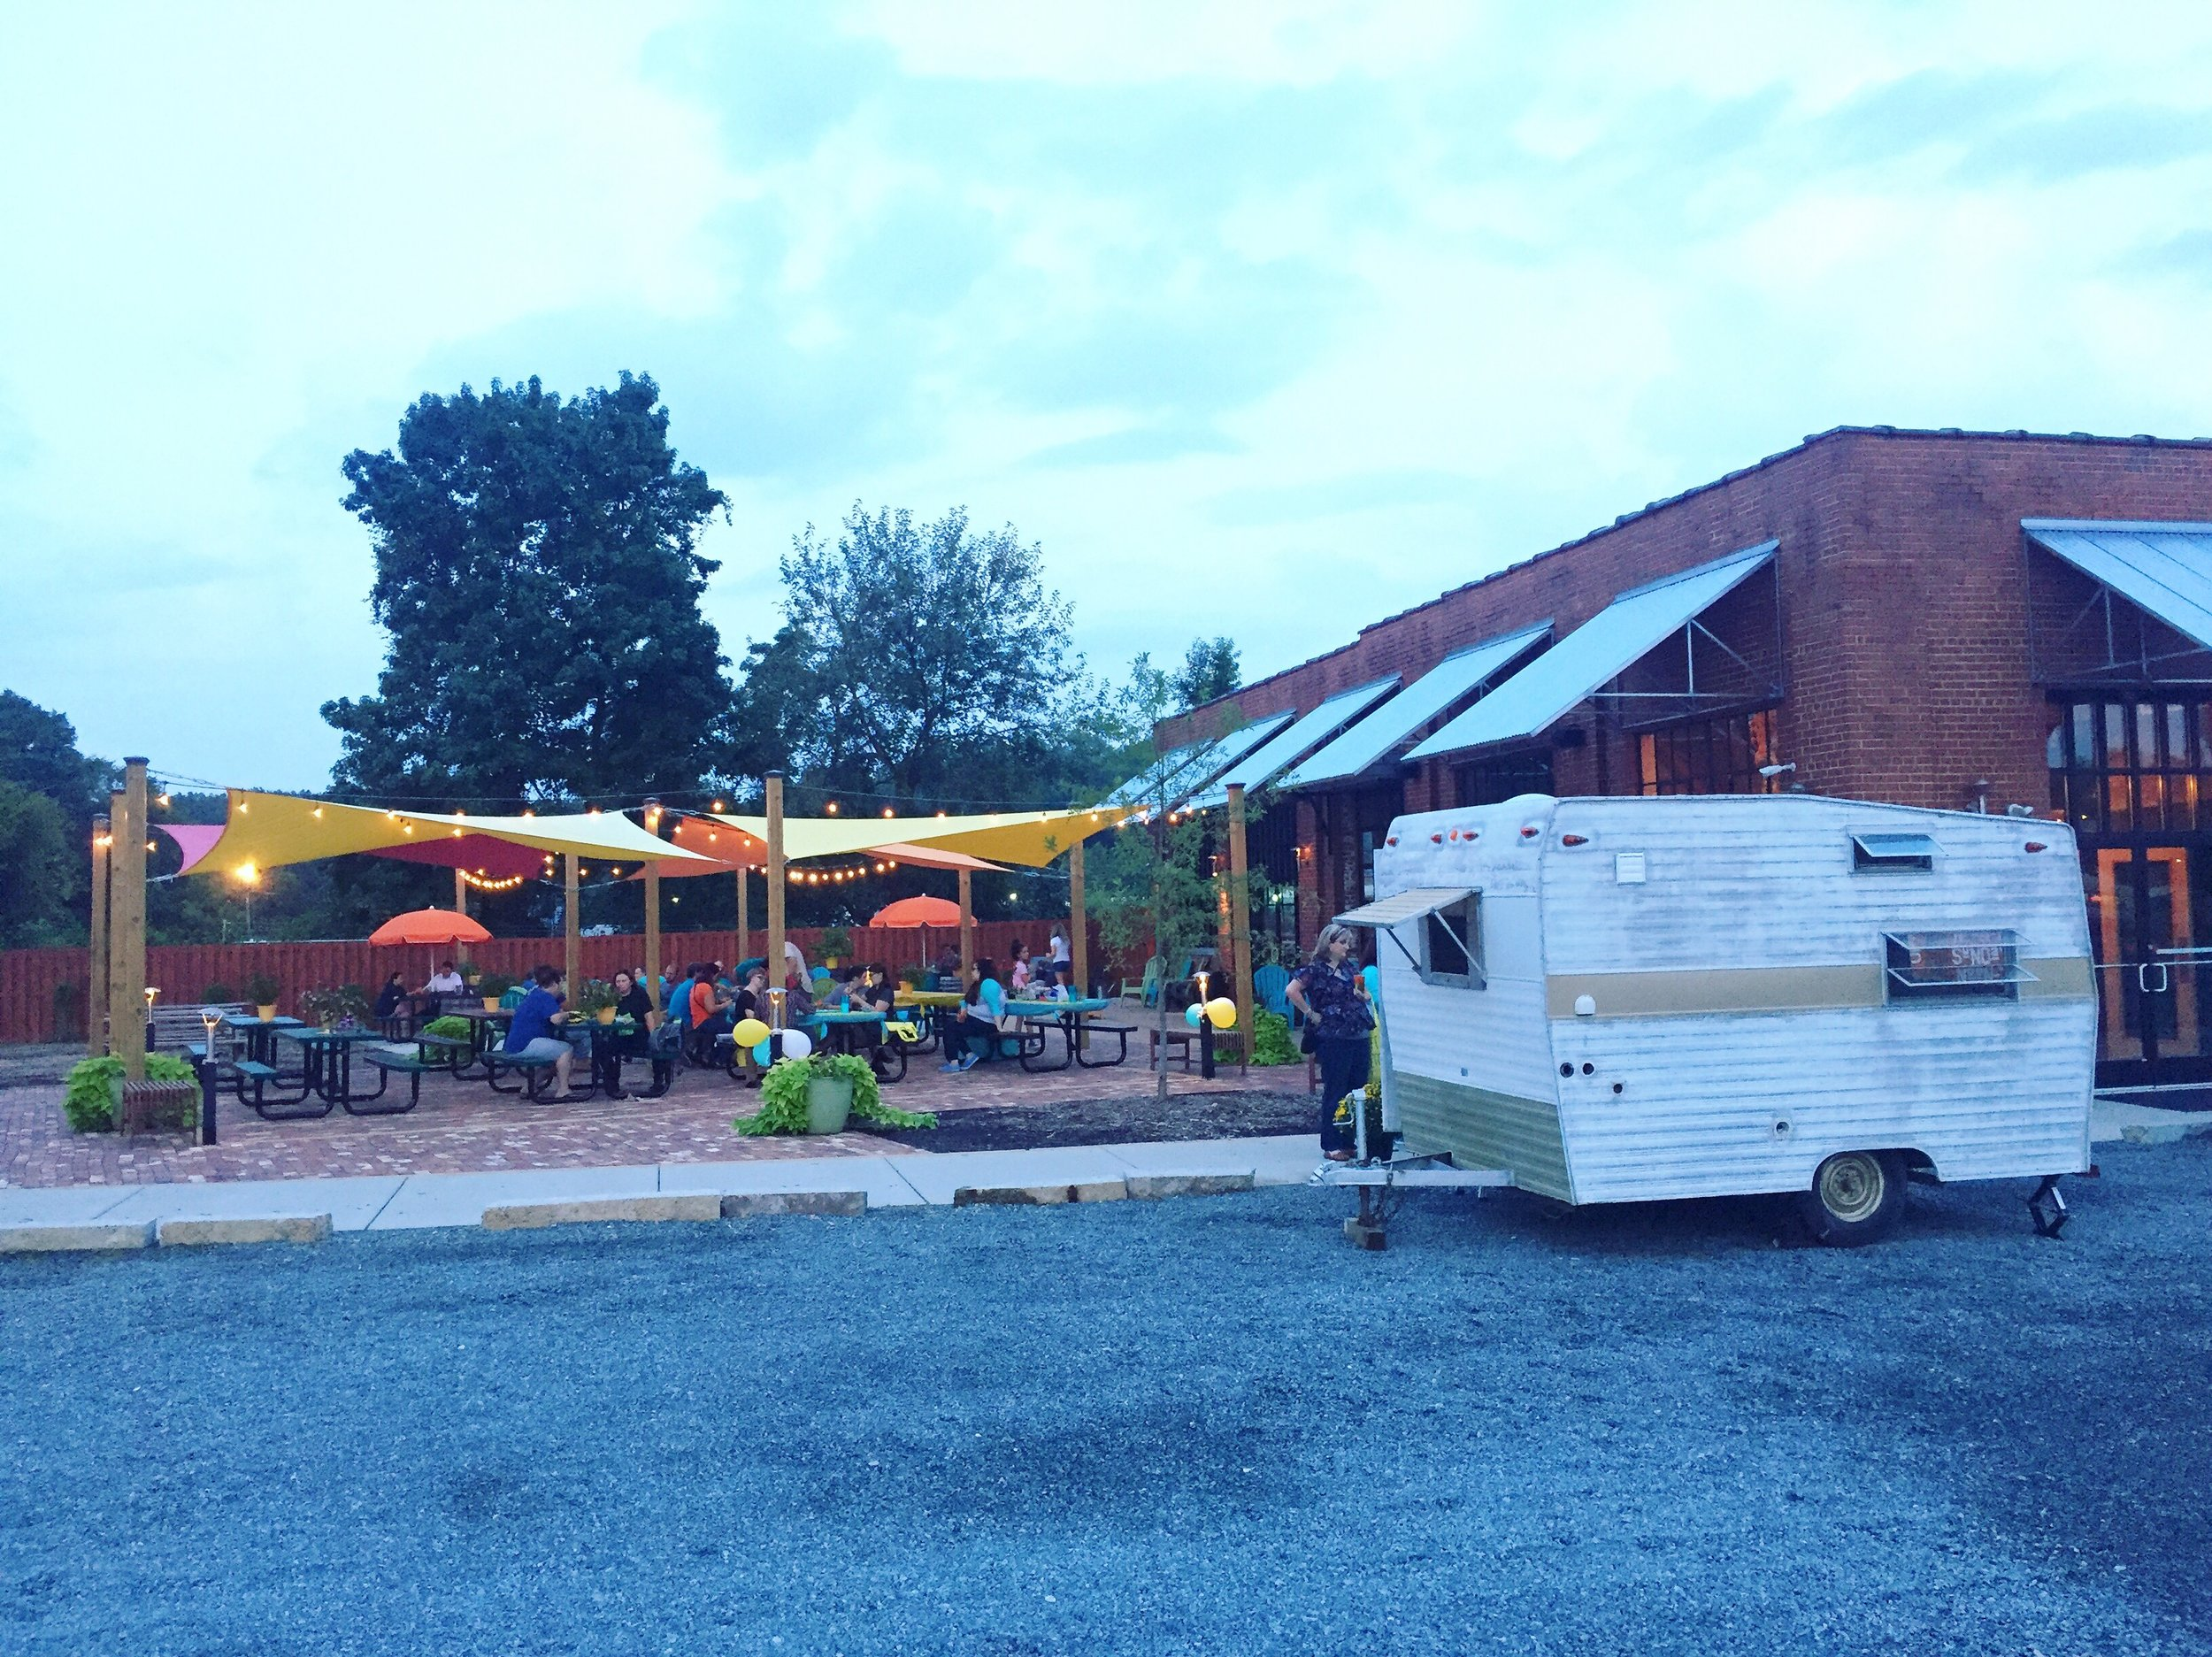 The guest of honor, a 1968 Shasta Camper, at Noda Brewing.